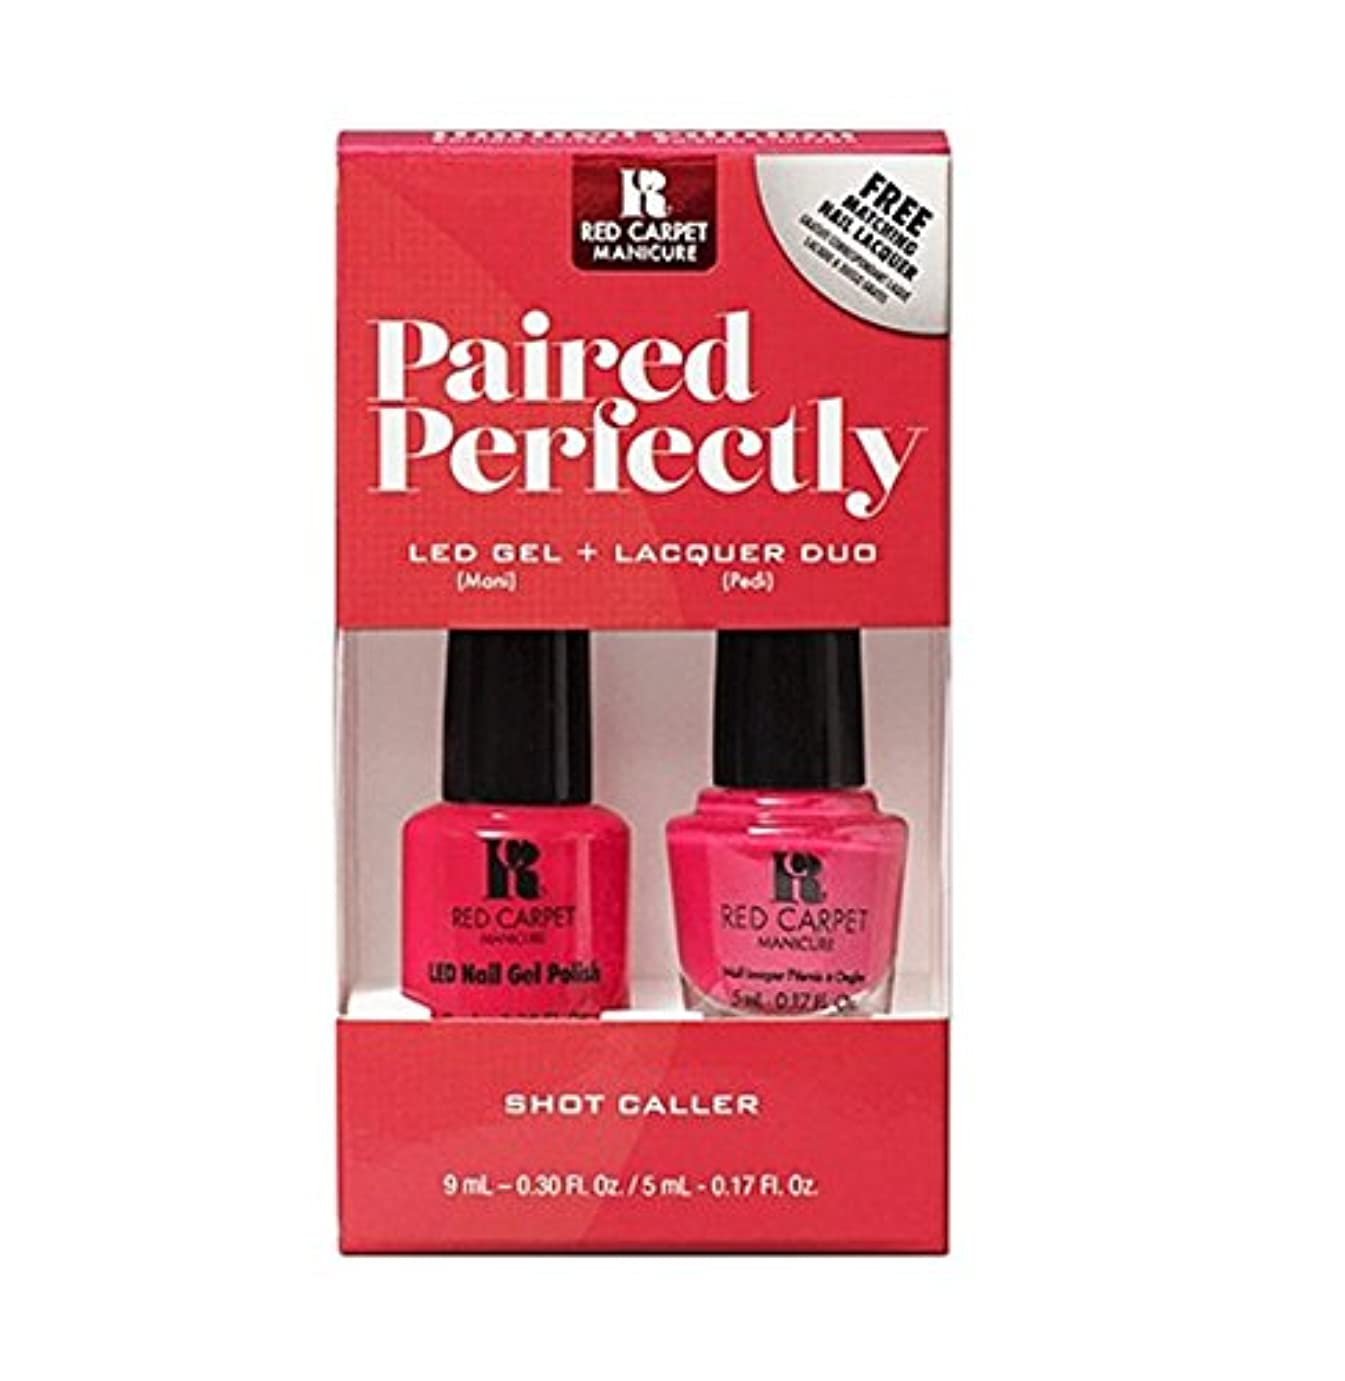 Red Carpet Manicure - Paired Perfectly GEL & Lacquer DUO - Shot Caller